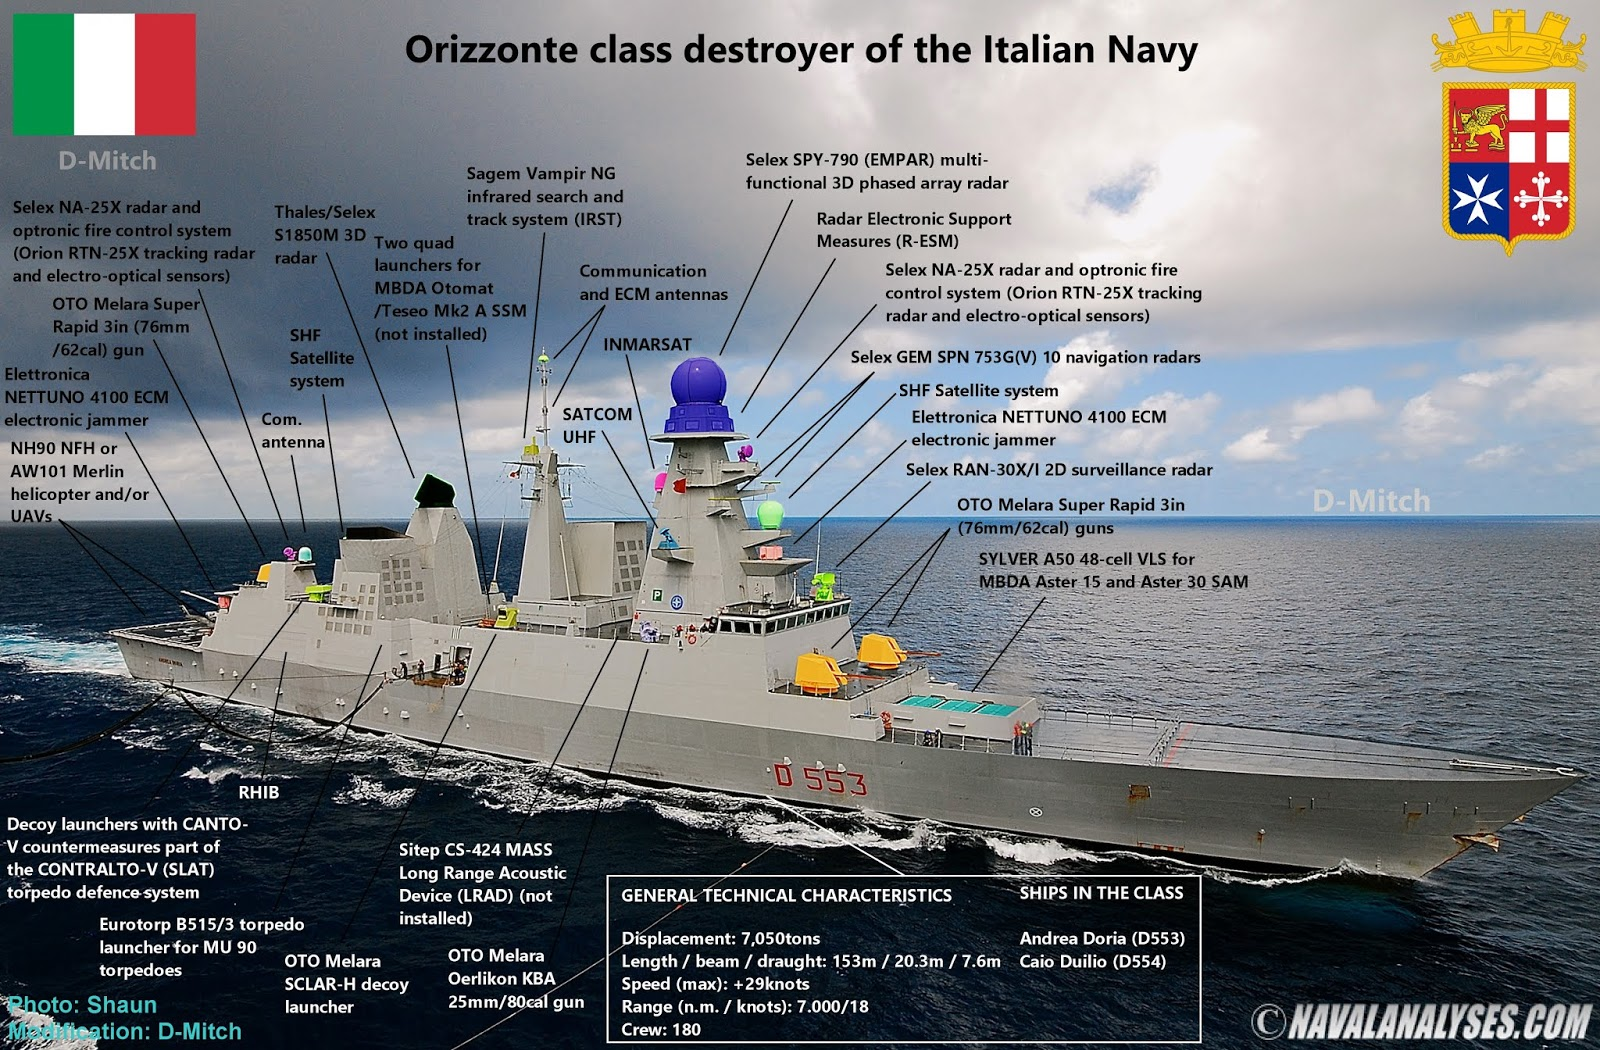 Naval Analyses: Horizon class destroyers of the French and Italian Navy